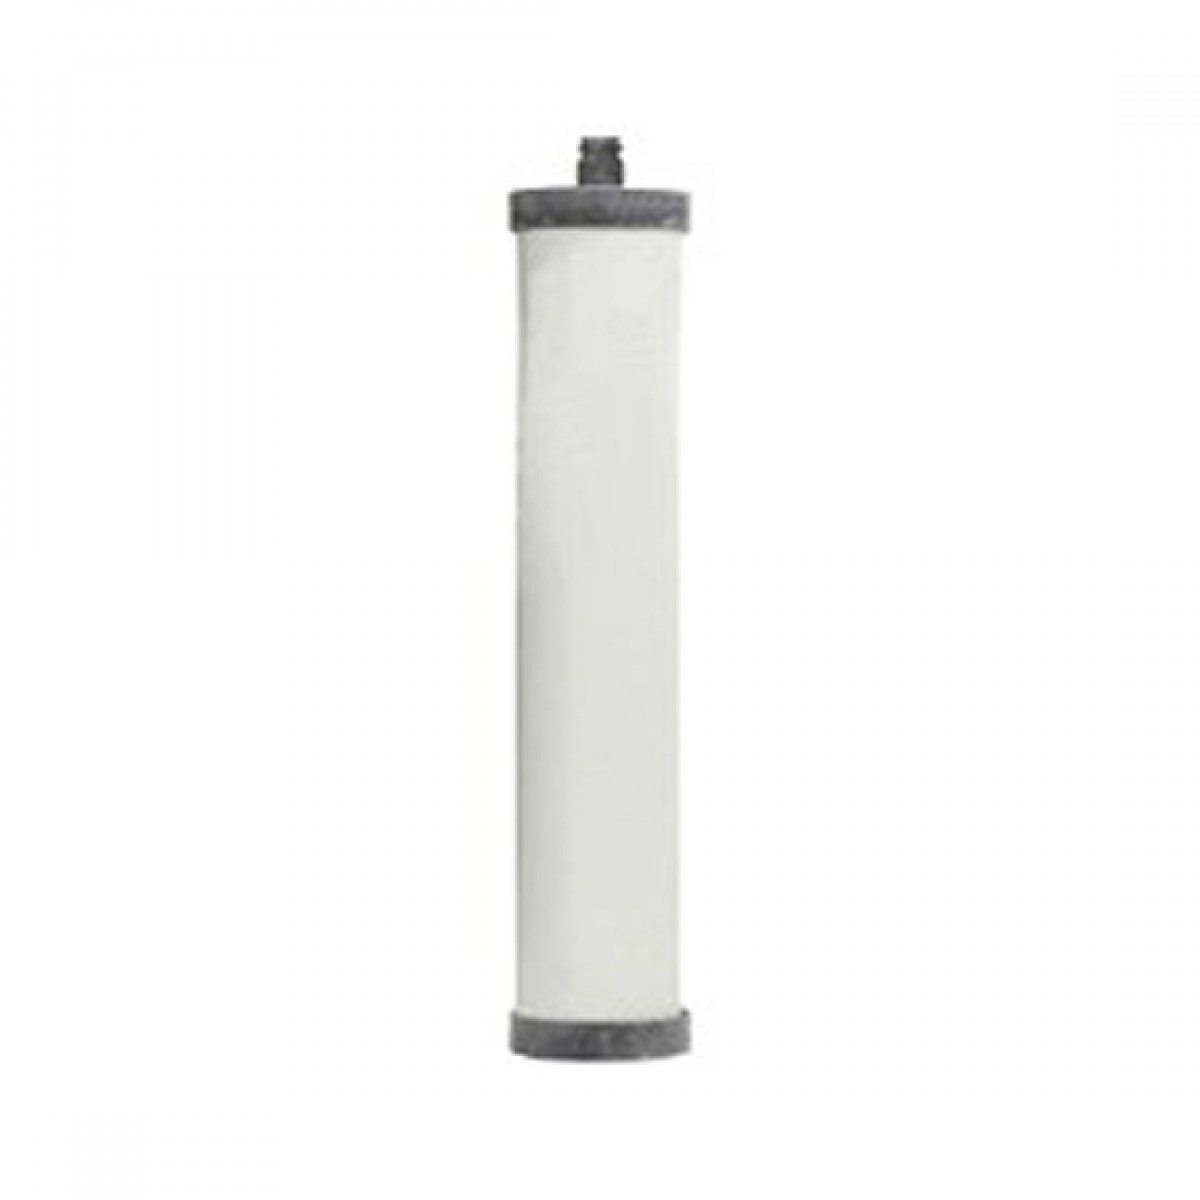 Franke Filter : ... W9223026 UltraCarb M15 FRX02 Franke Filter > Catalog Advanced Search